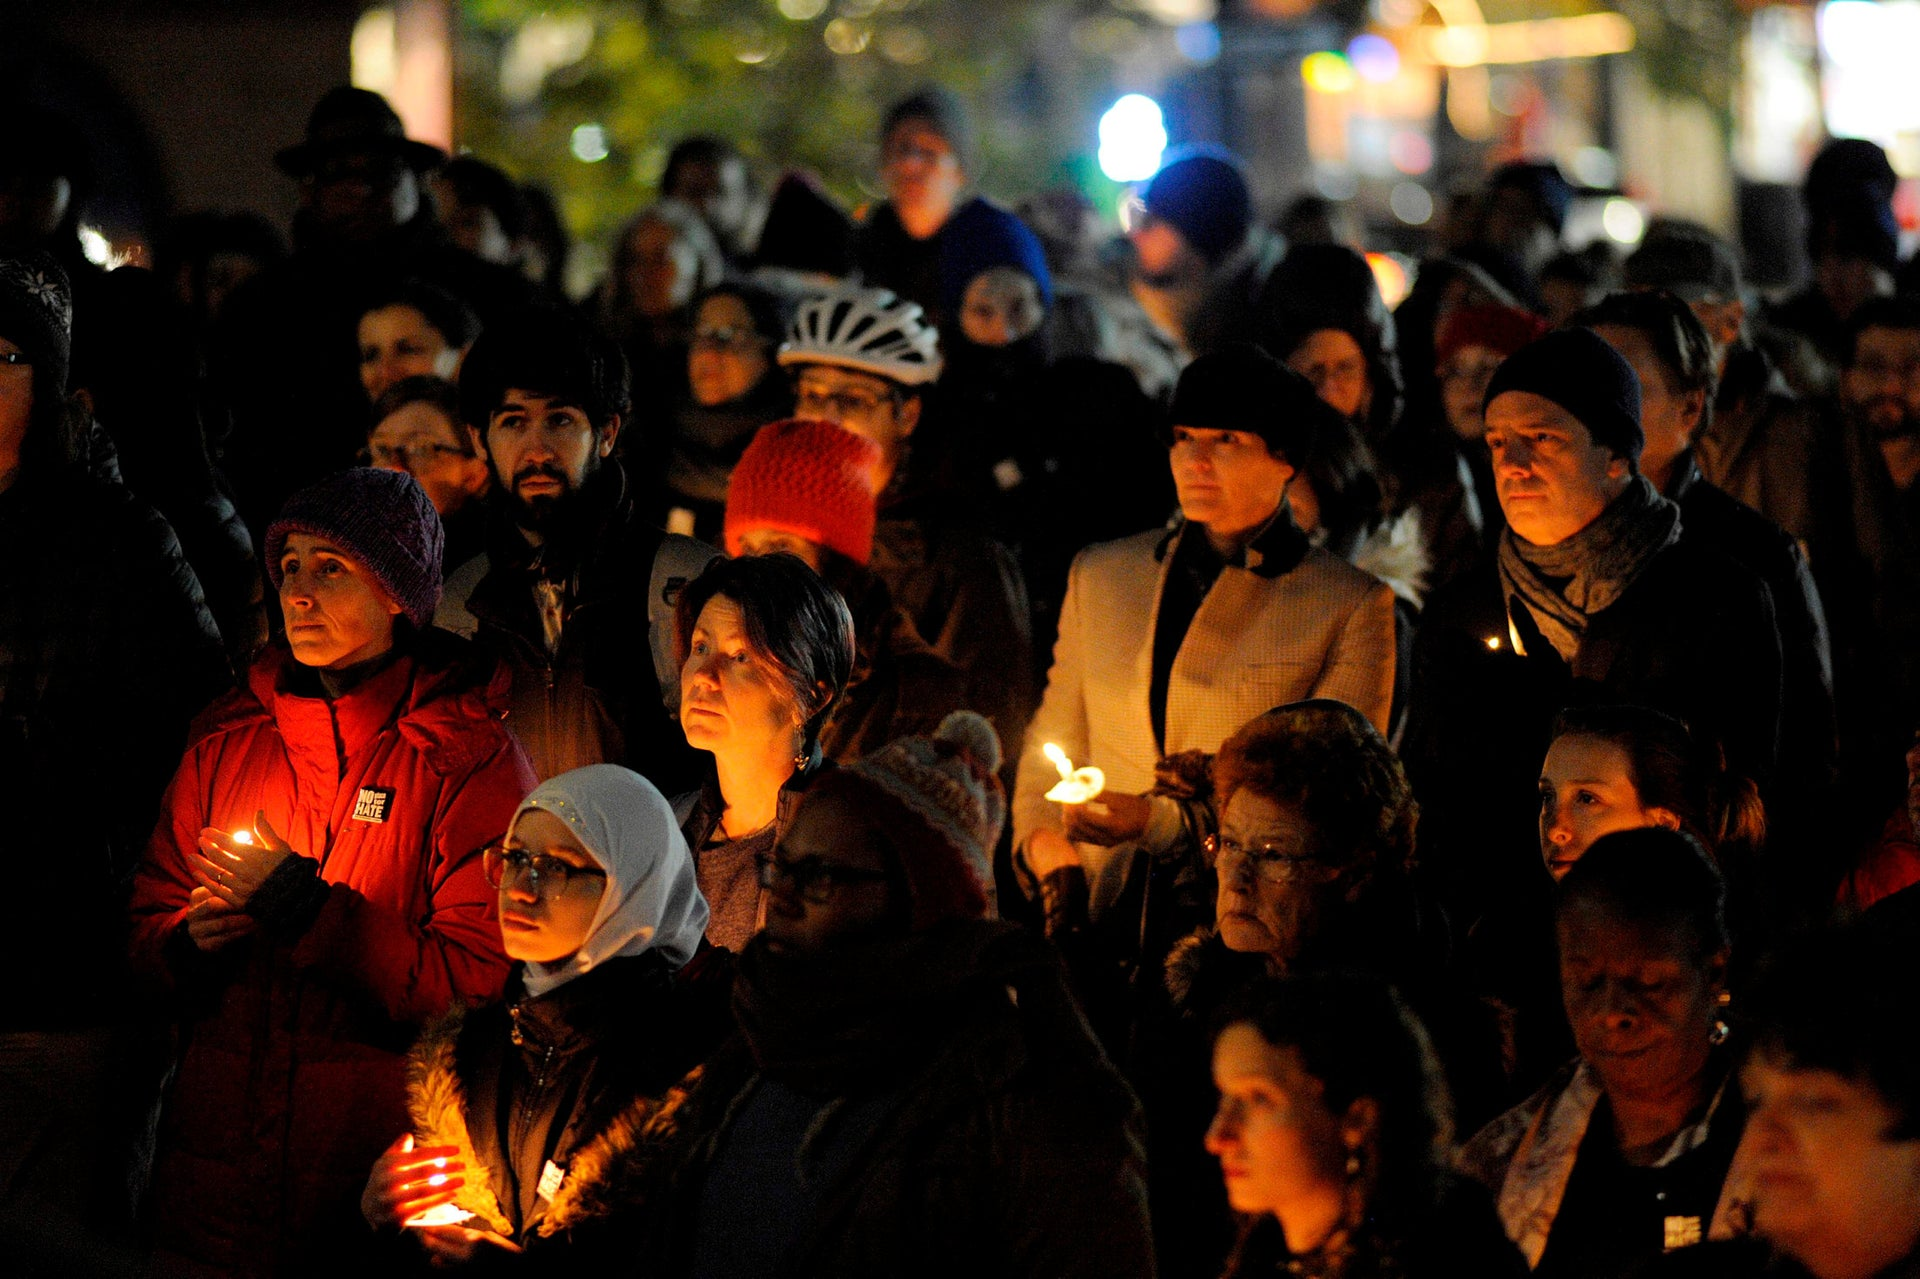 Community members hold candles at a vigil for the victims of the Pittsburgh Synagogue shooting at Cambridge City Hall in Cambridge, Massachusetts on October 30, 2018.